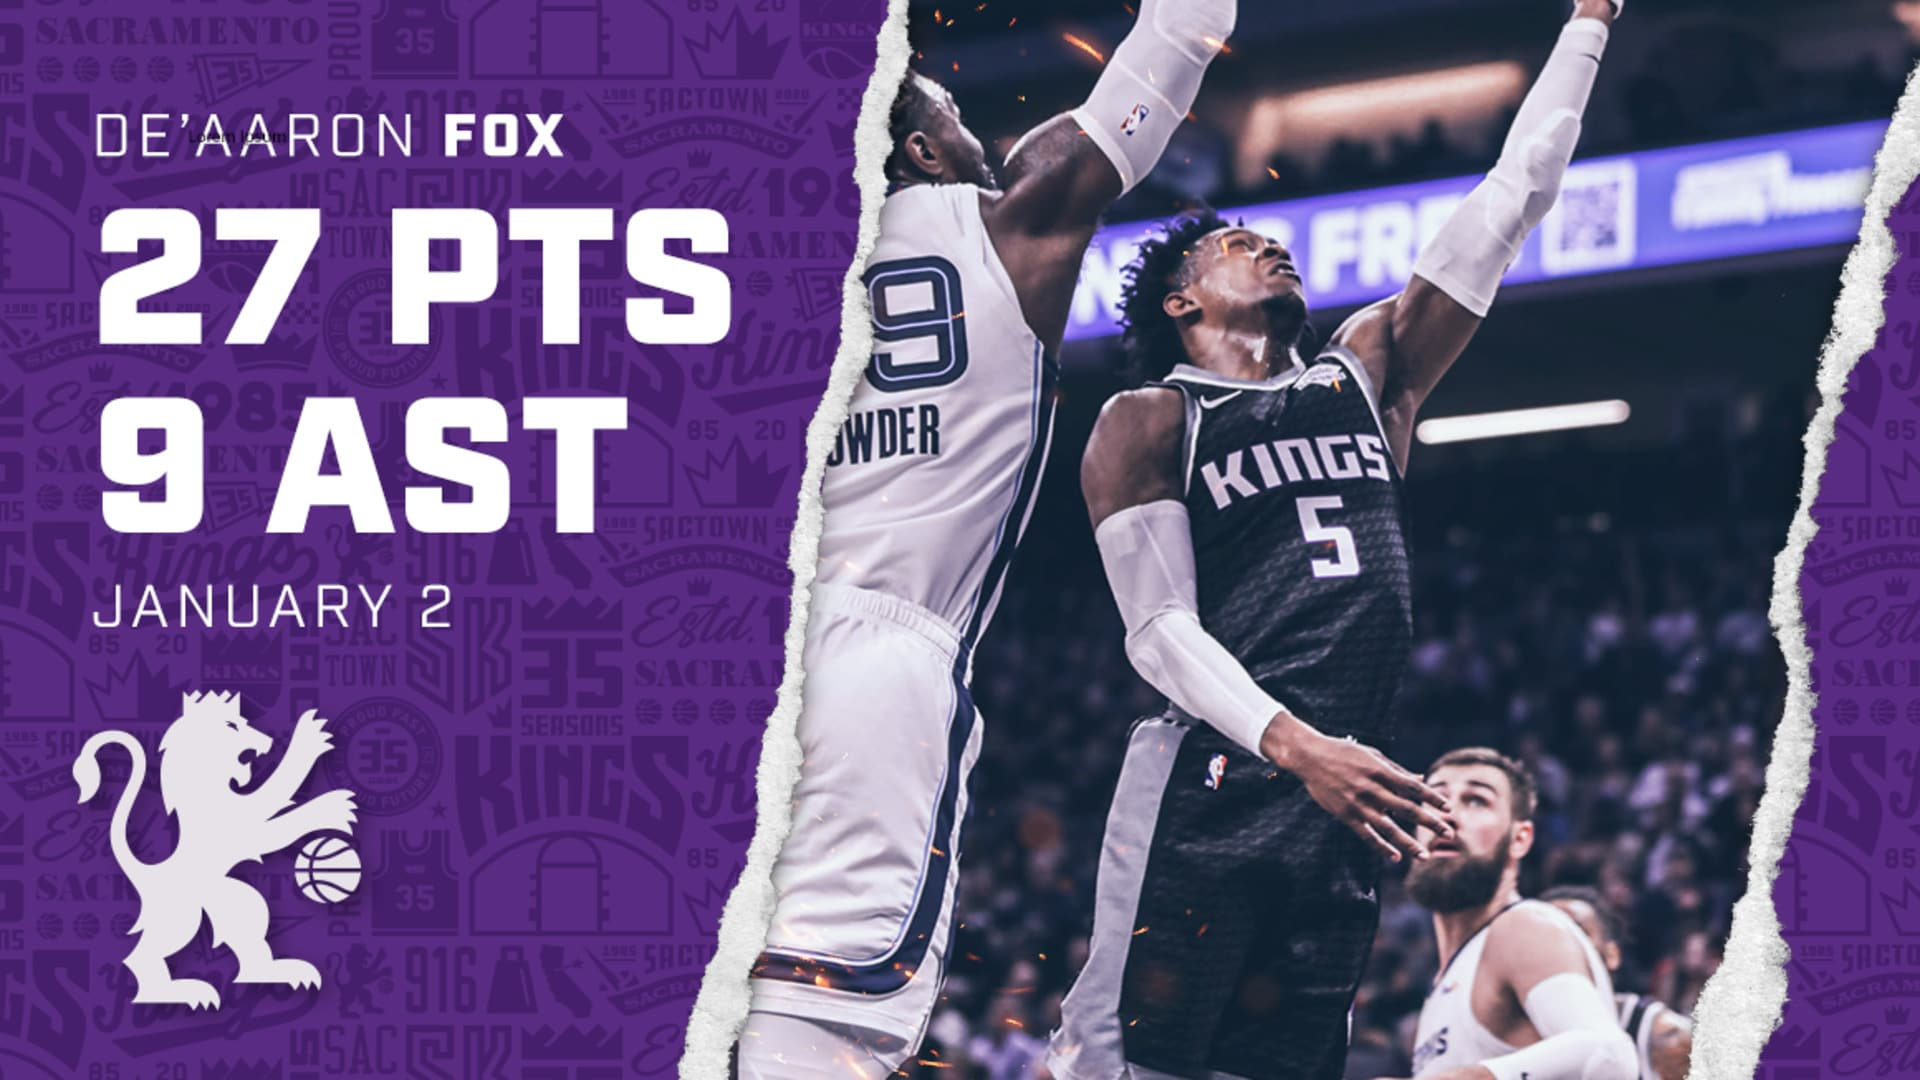 De'Aaron Fox Puts Up 27 PTS in a Comeback WIN! | Kings vs Grizzlies